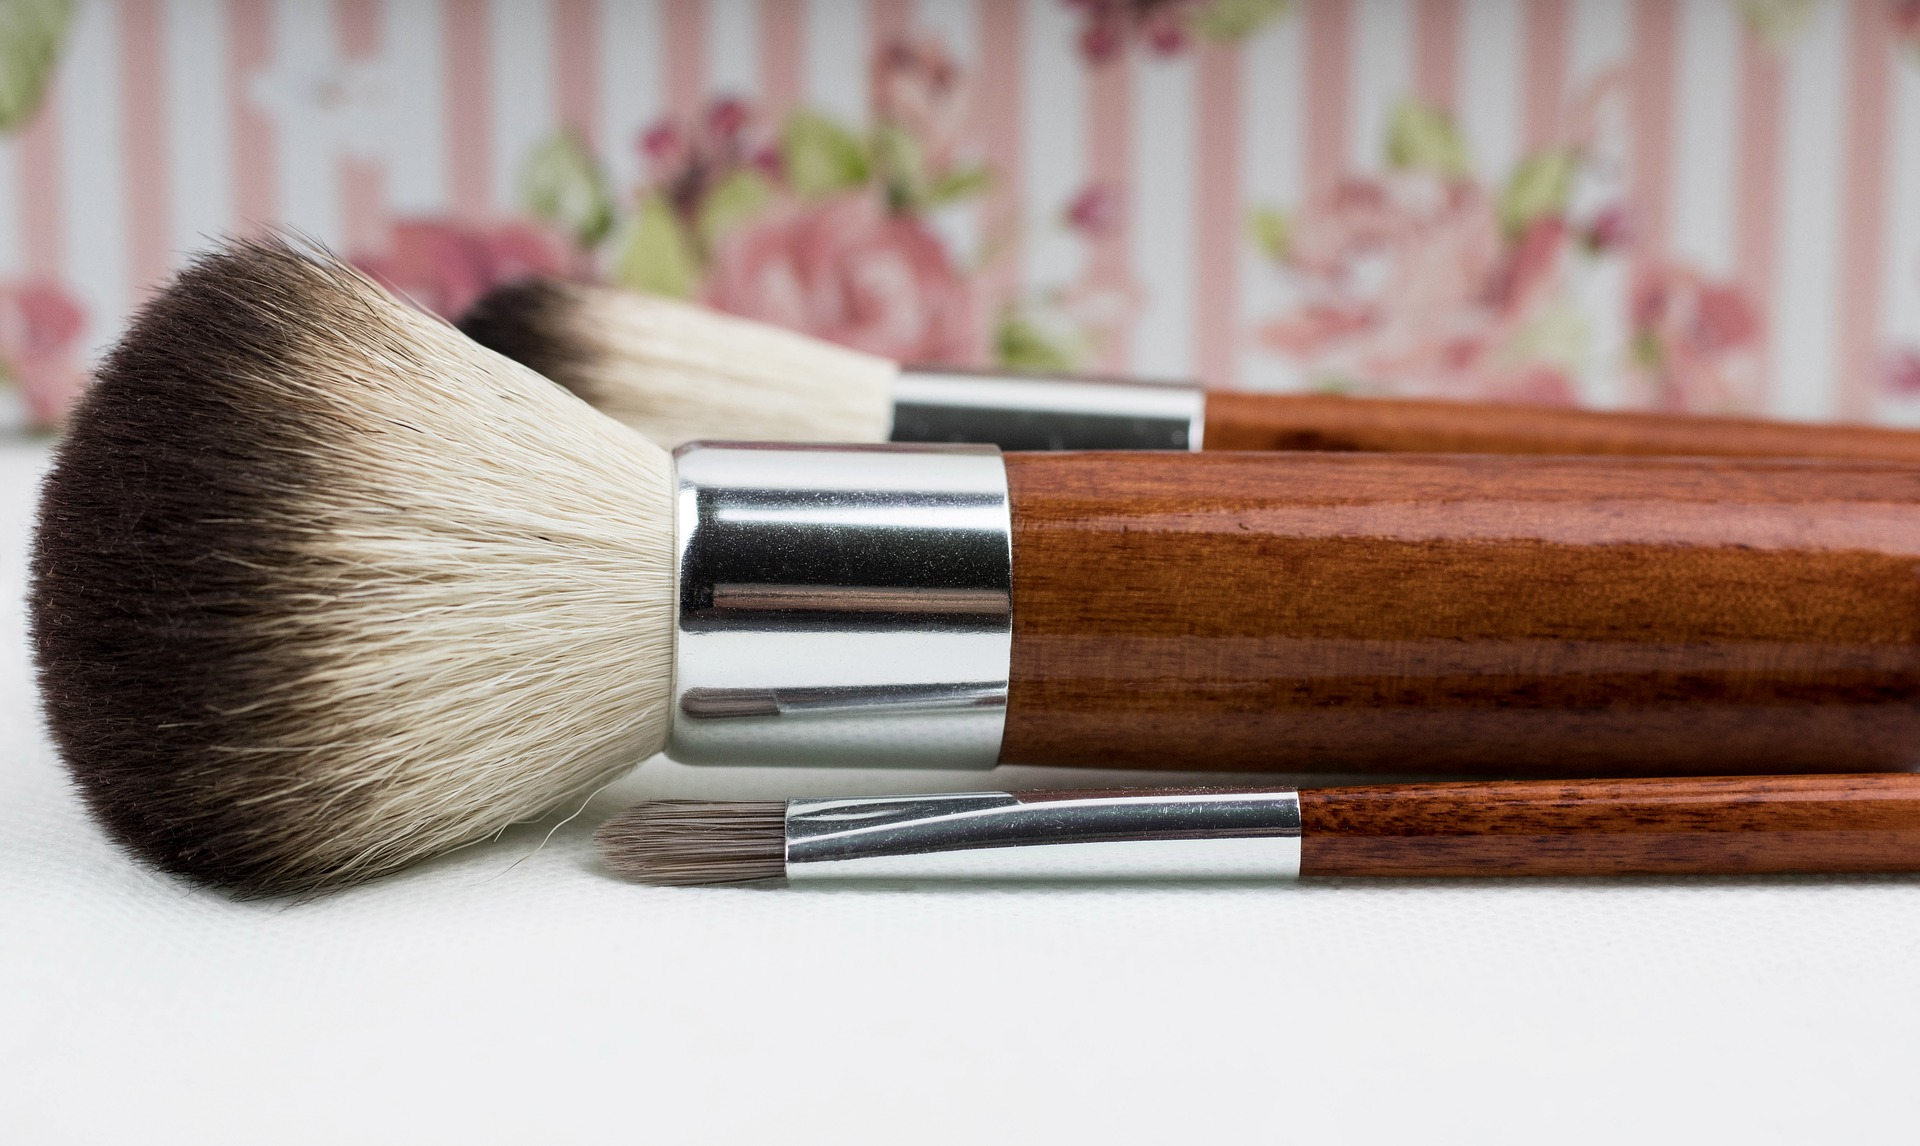 Shoppers who already have a set of brushes may need to replace just one. But a full set makes a great holiday gift, doesn't it?